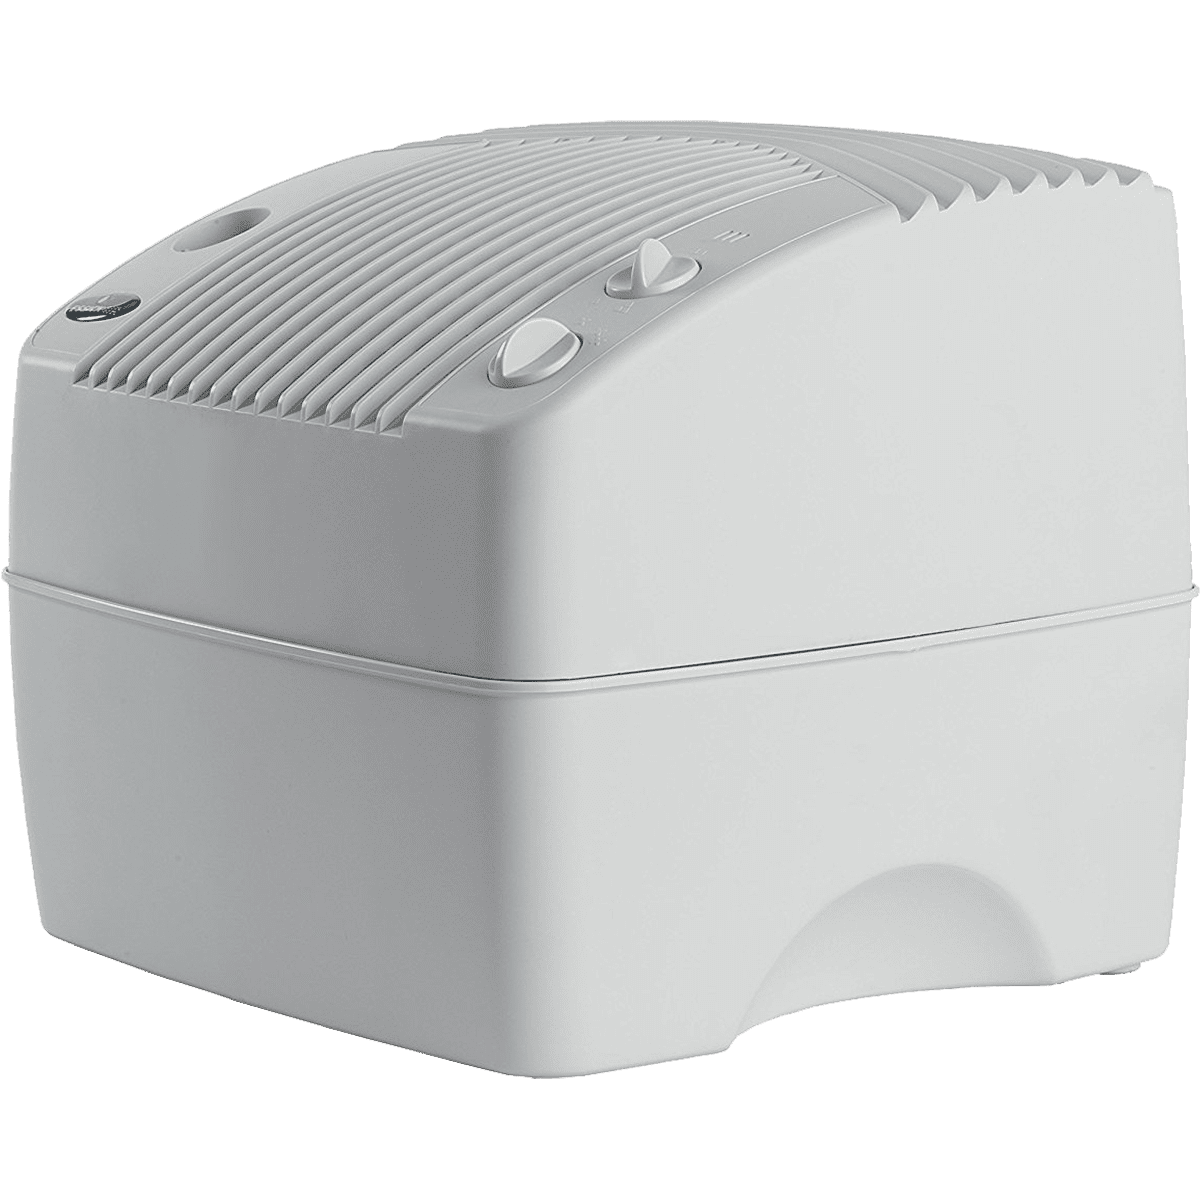 Baby Humidifiers & Vapourizers White AIRCARE E35 000 2-Speed ...